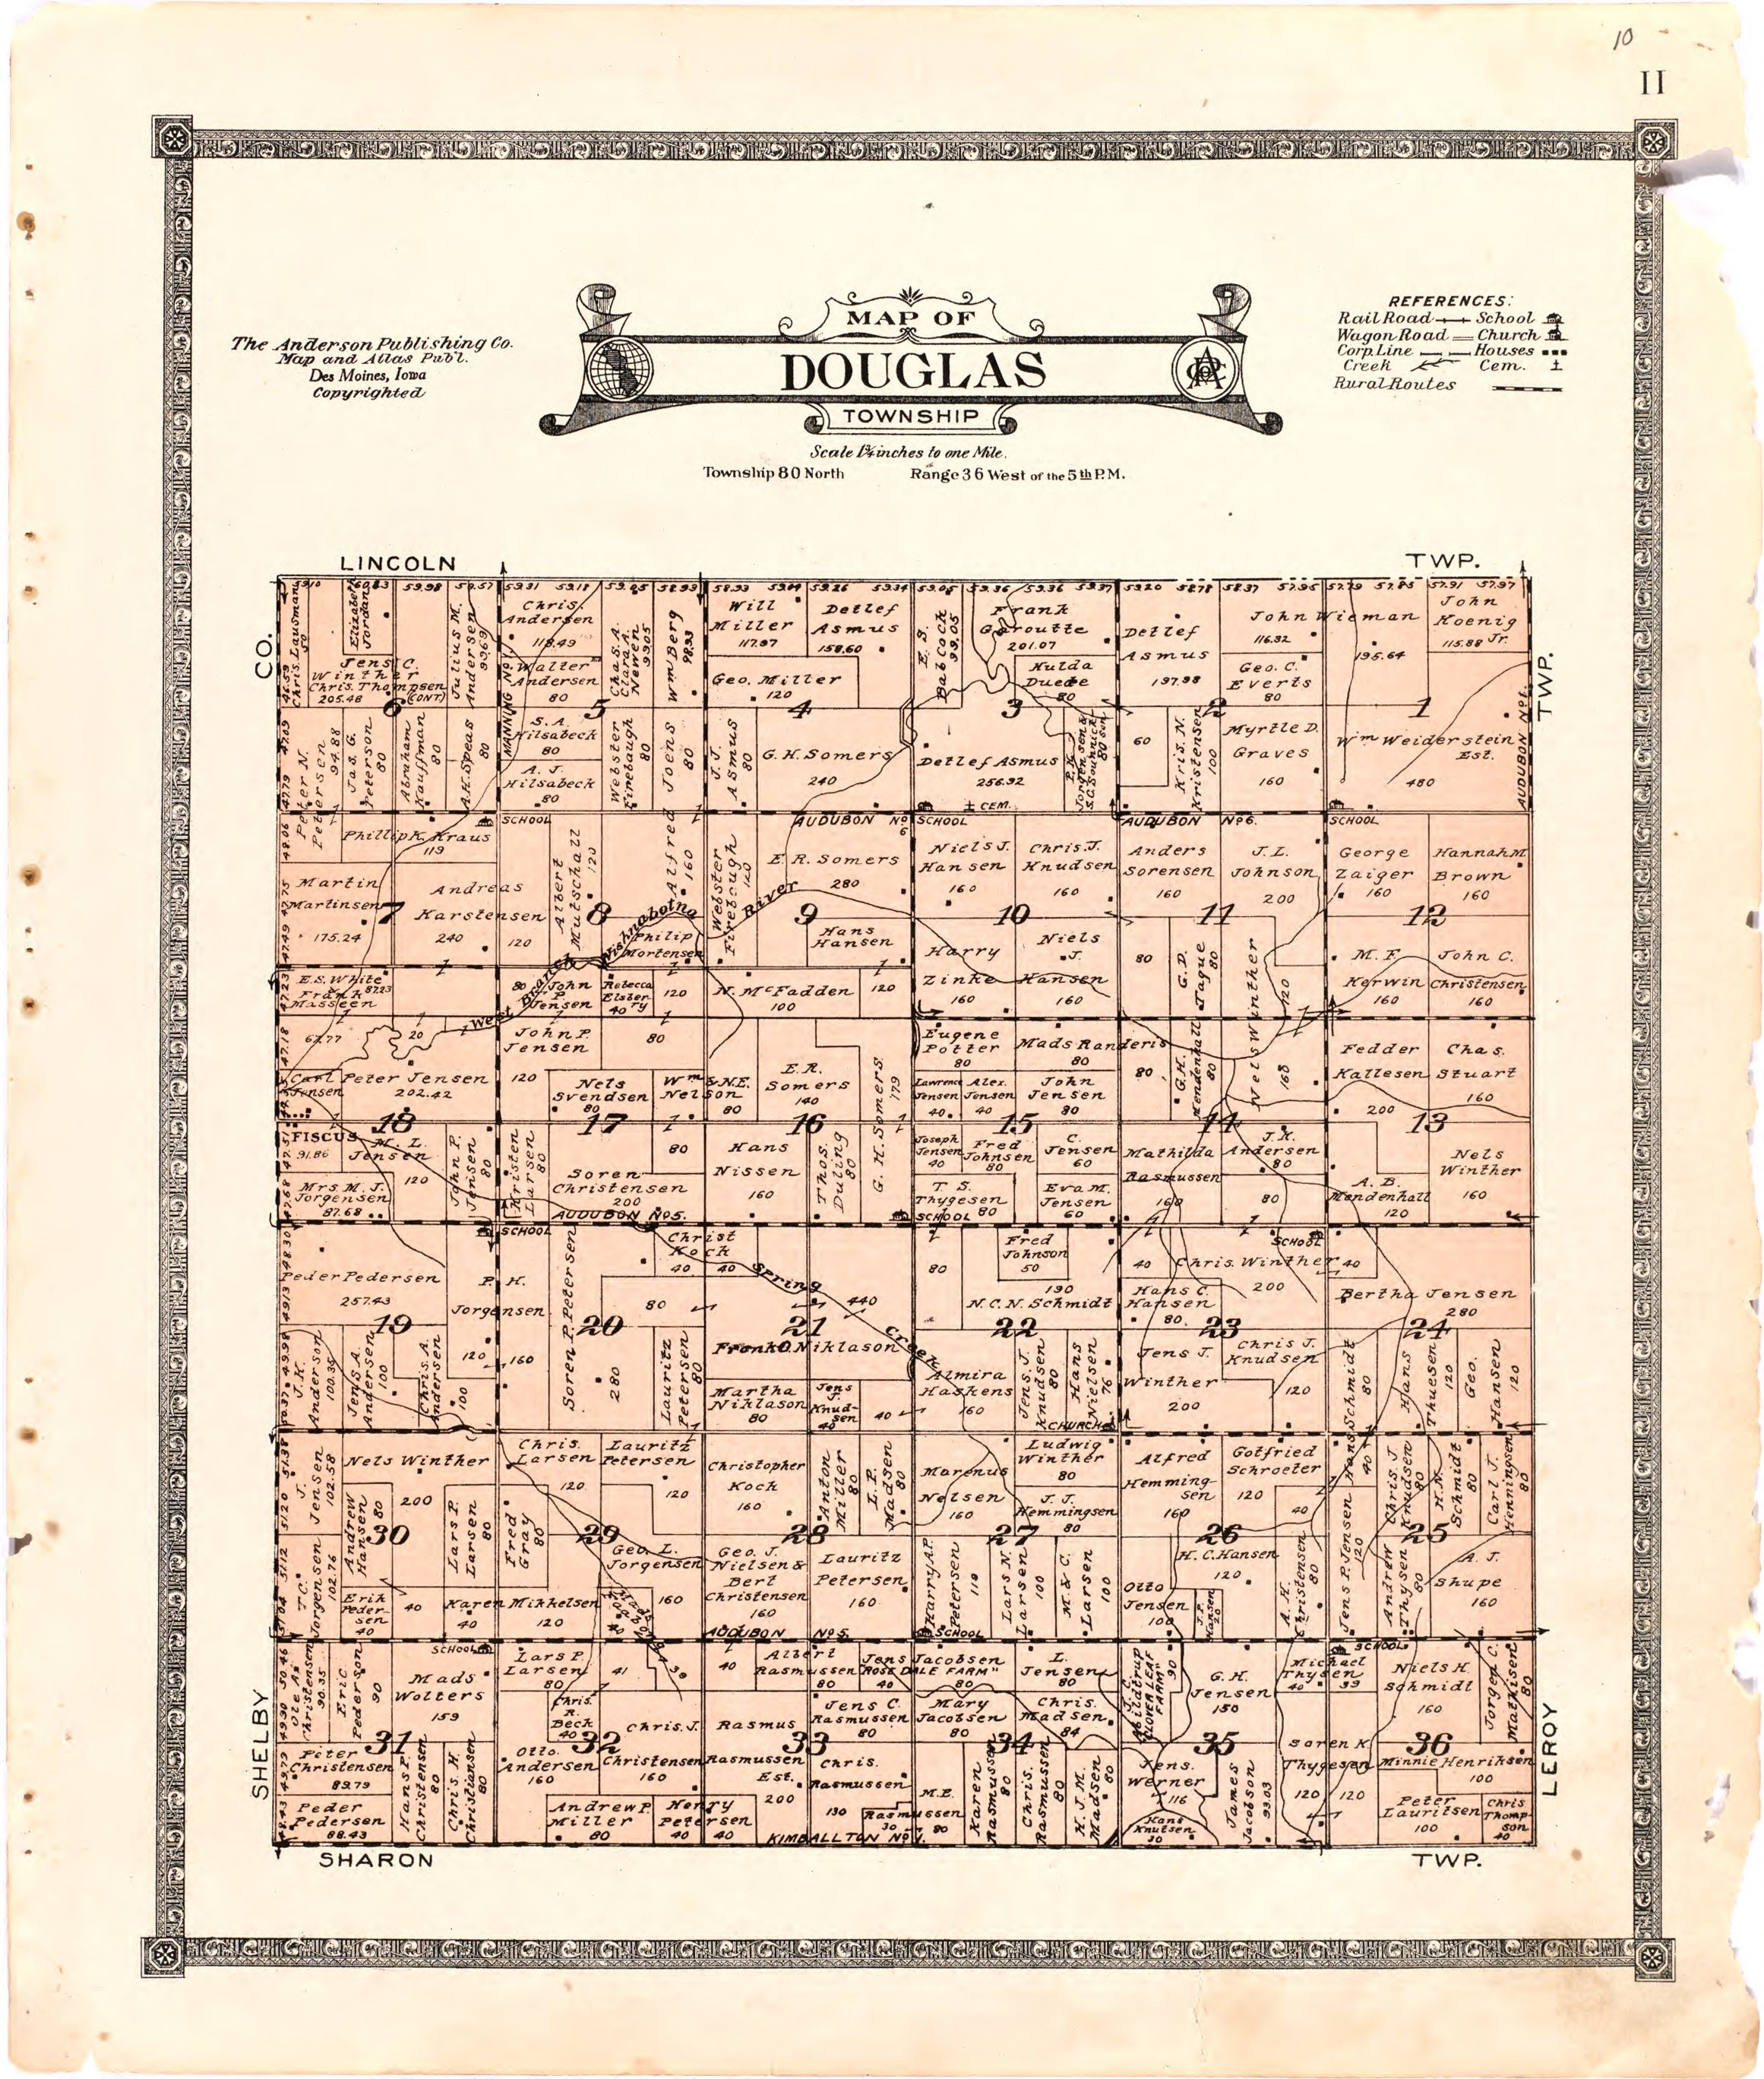 1921 Farm Map of Douglas Township, Audubon County, Iowa